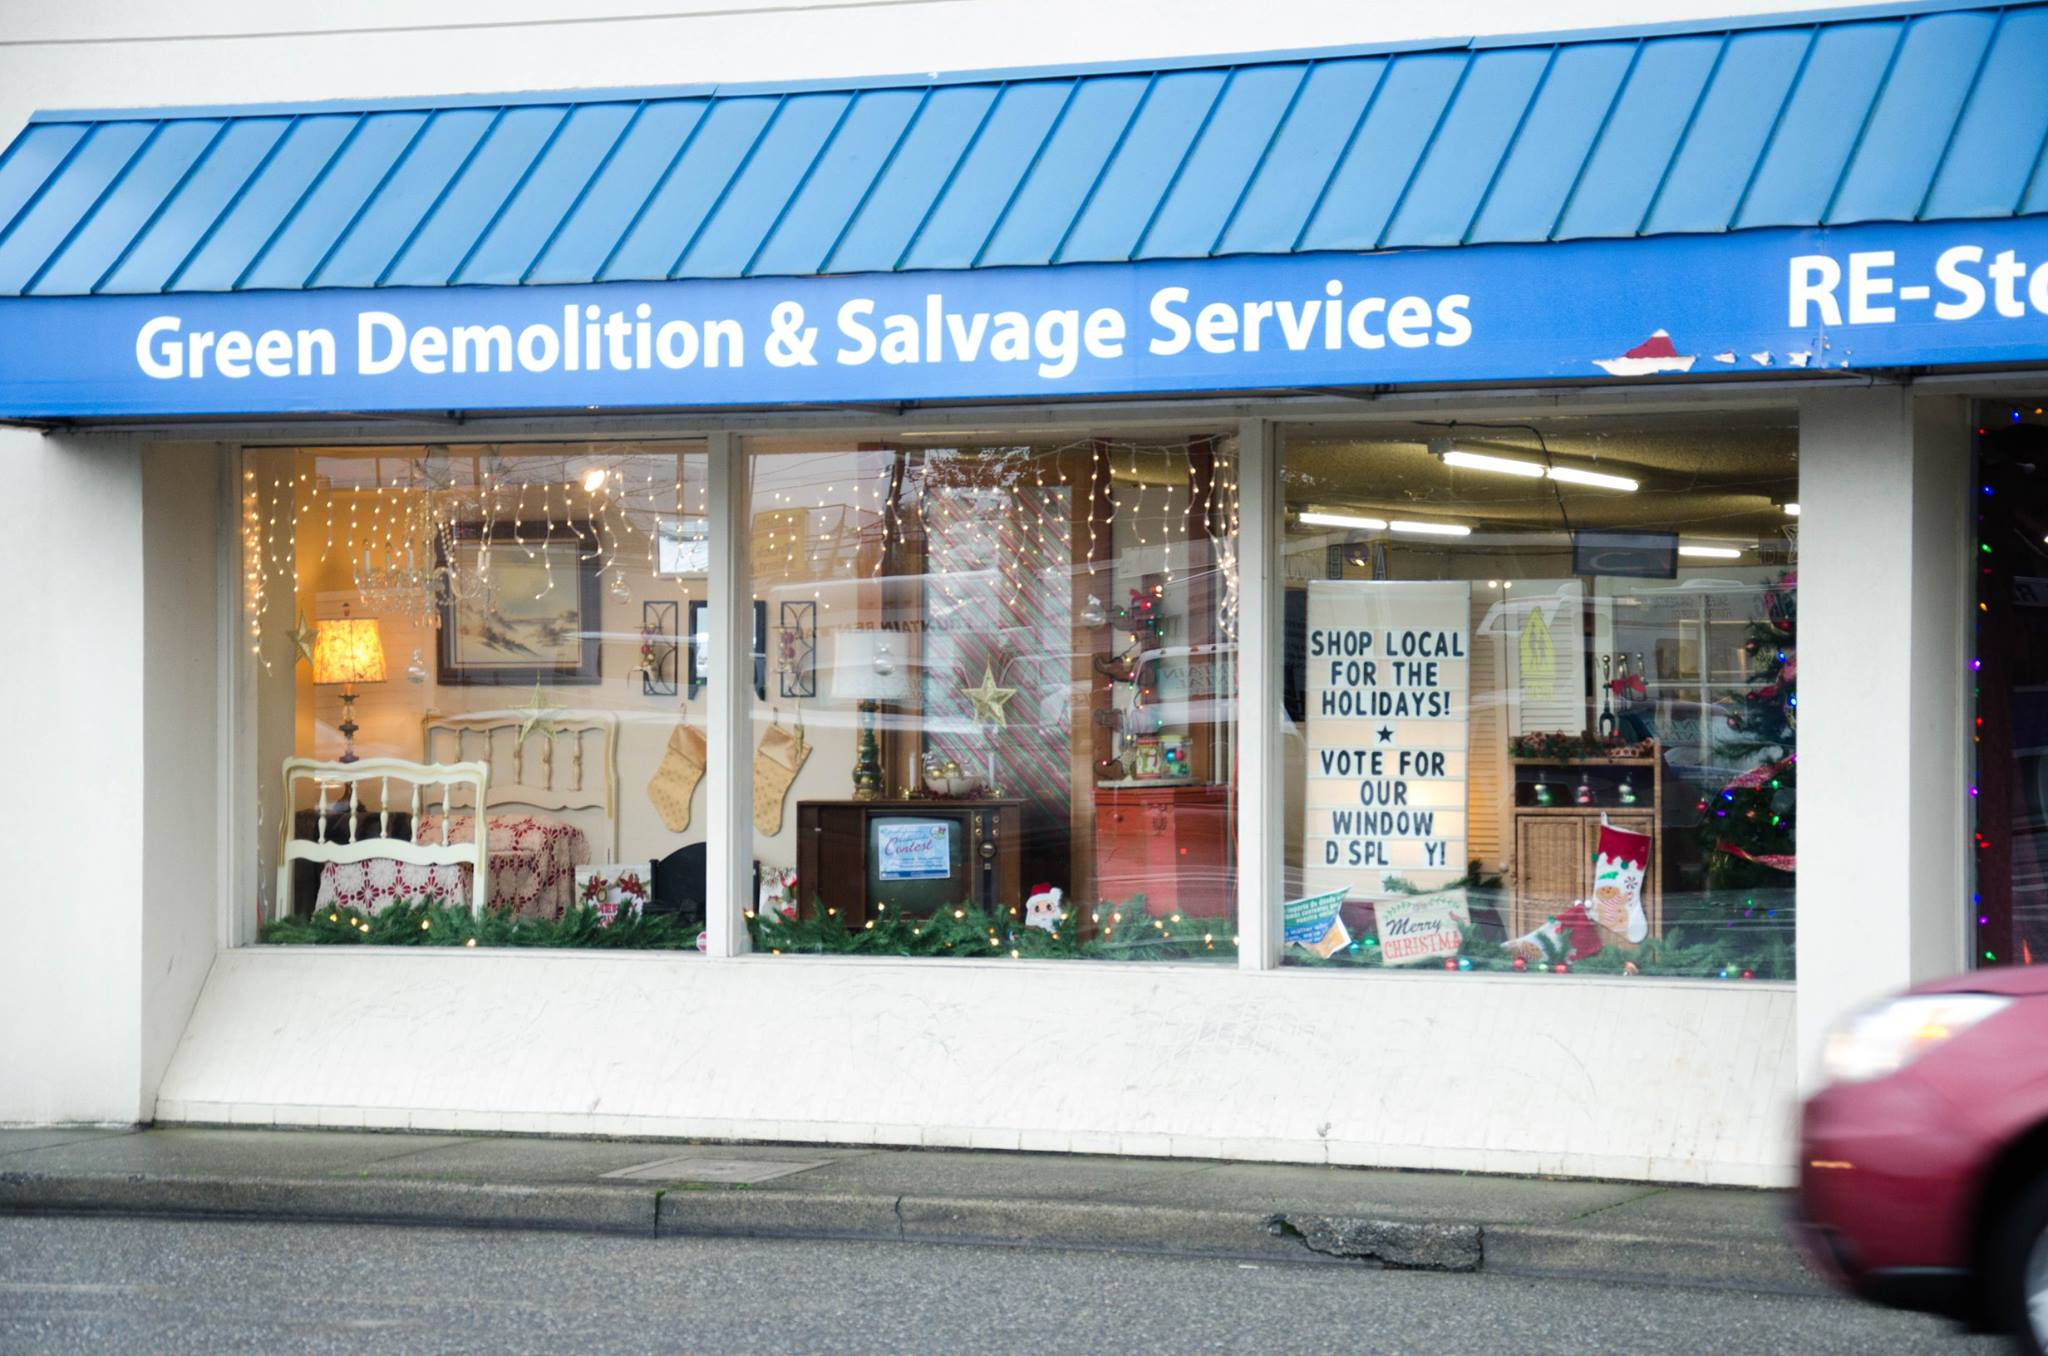 ... Mt Baker Care Center, Overhead Door Co. Of Bellingham, Final Touch Auto  Spa, Louis Auto Glass, Bay City Supply, Lithtex NW, Brio Laundry, ...